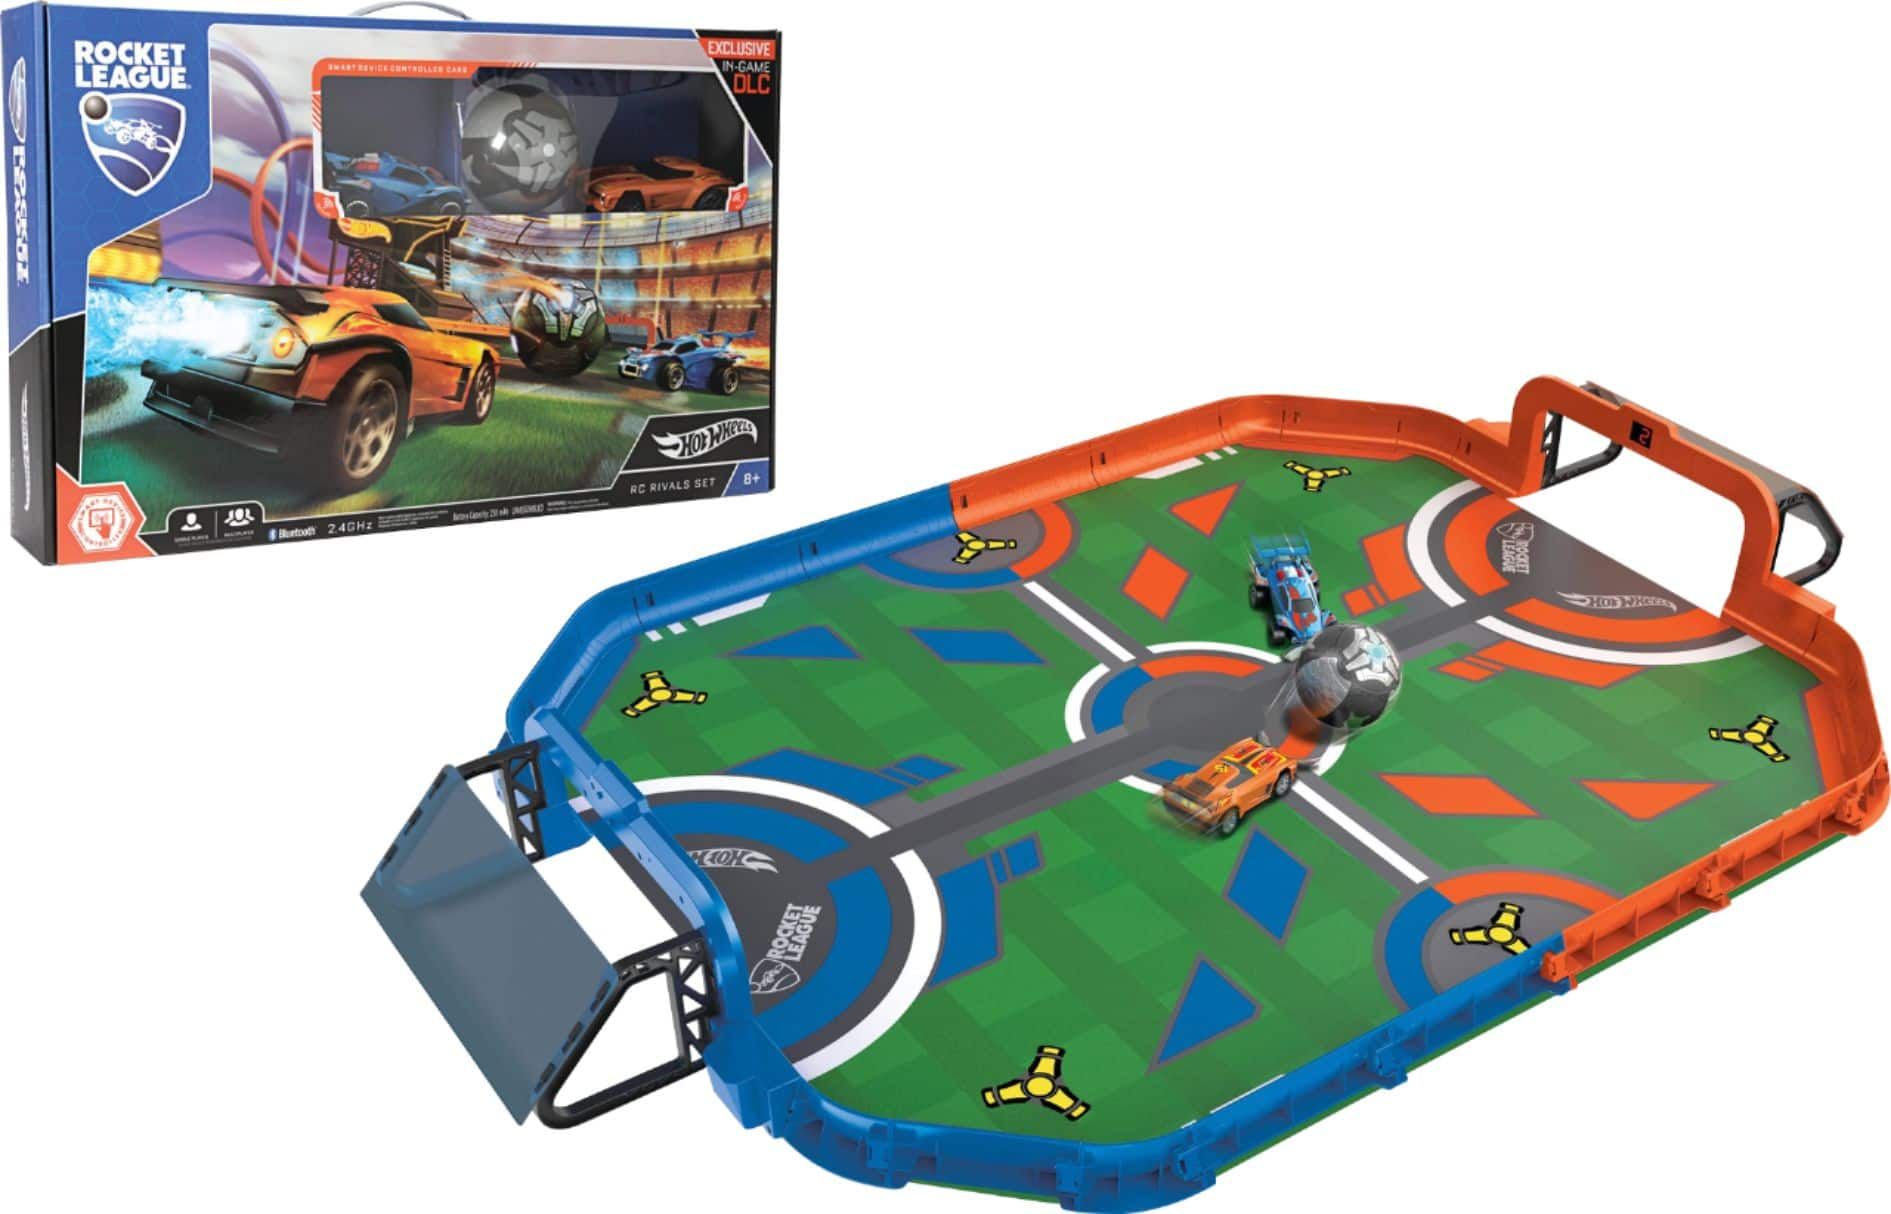 Hot Wheels Rocket League R/C Rivals Stadium Play Set $50 + Free Shipping